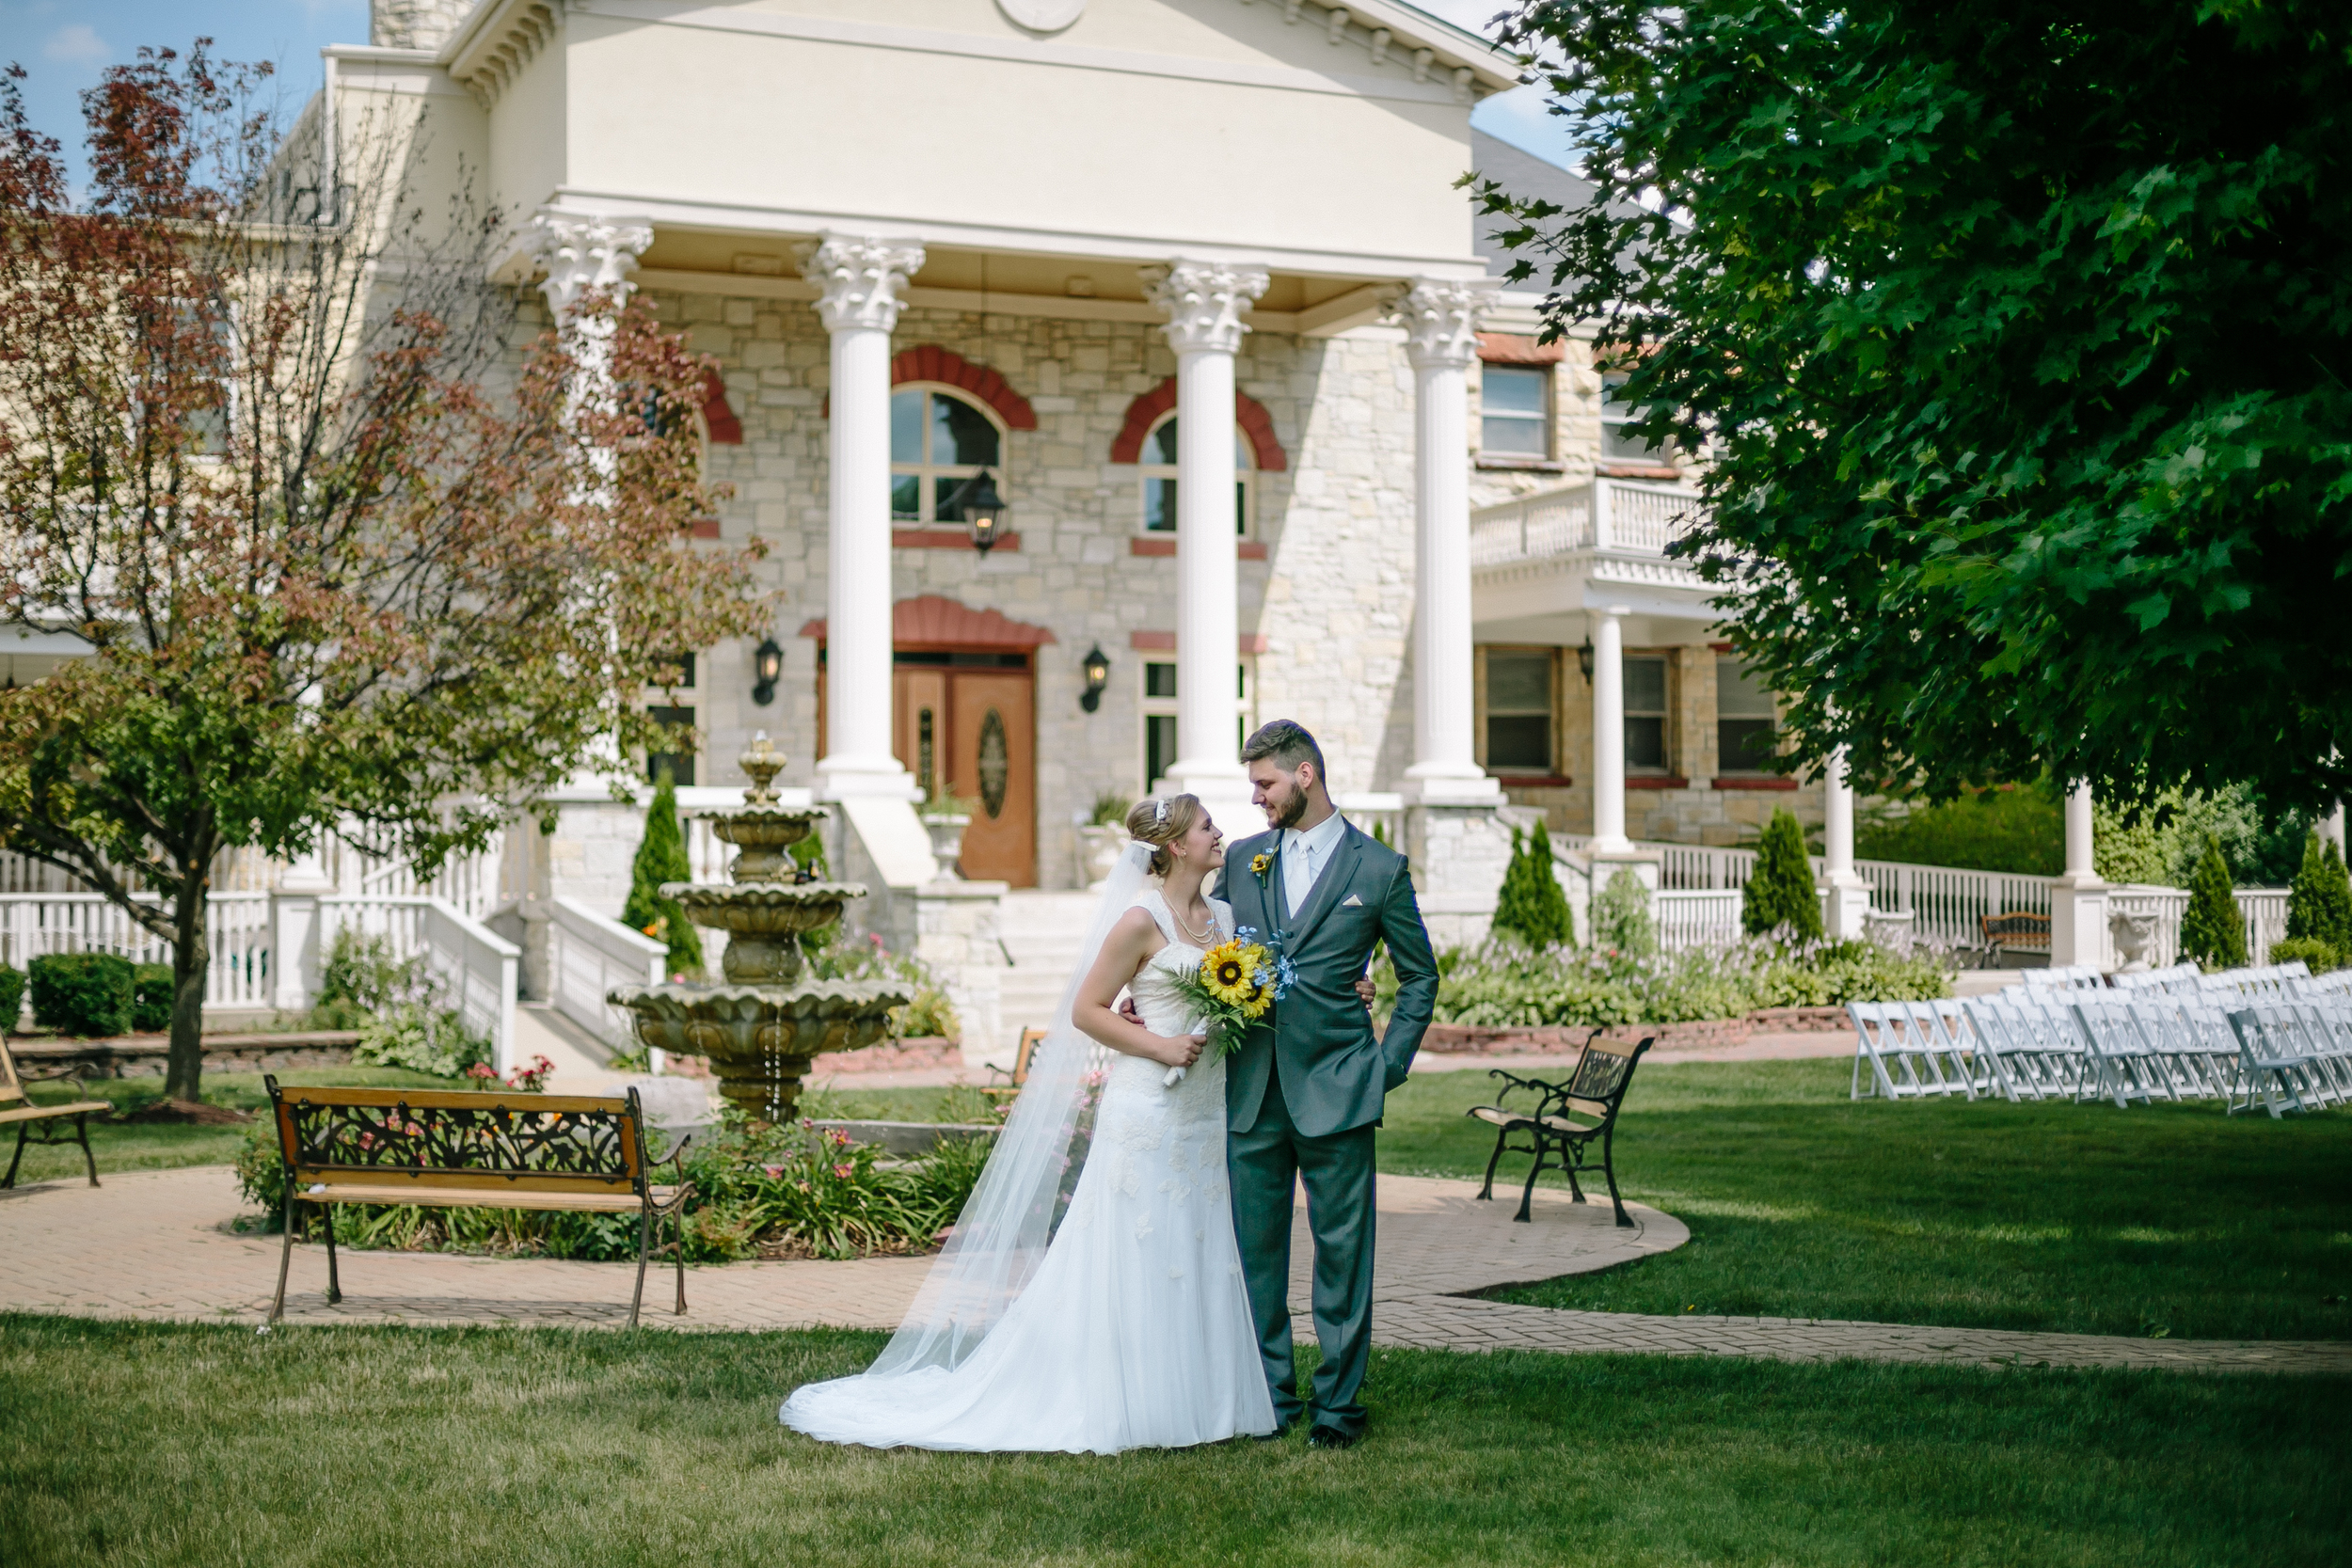 Jacob Henry Mansion Estate Joliet, Illinois - Wayne & Leanne Married - Corrie Mick Photography-122.jpg